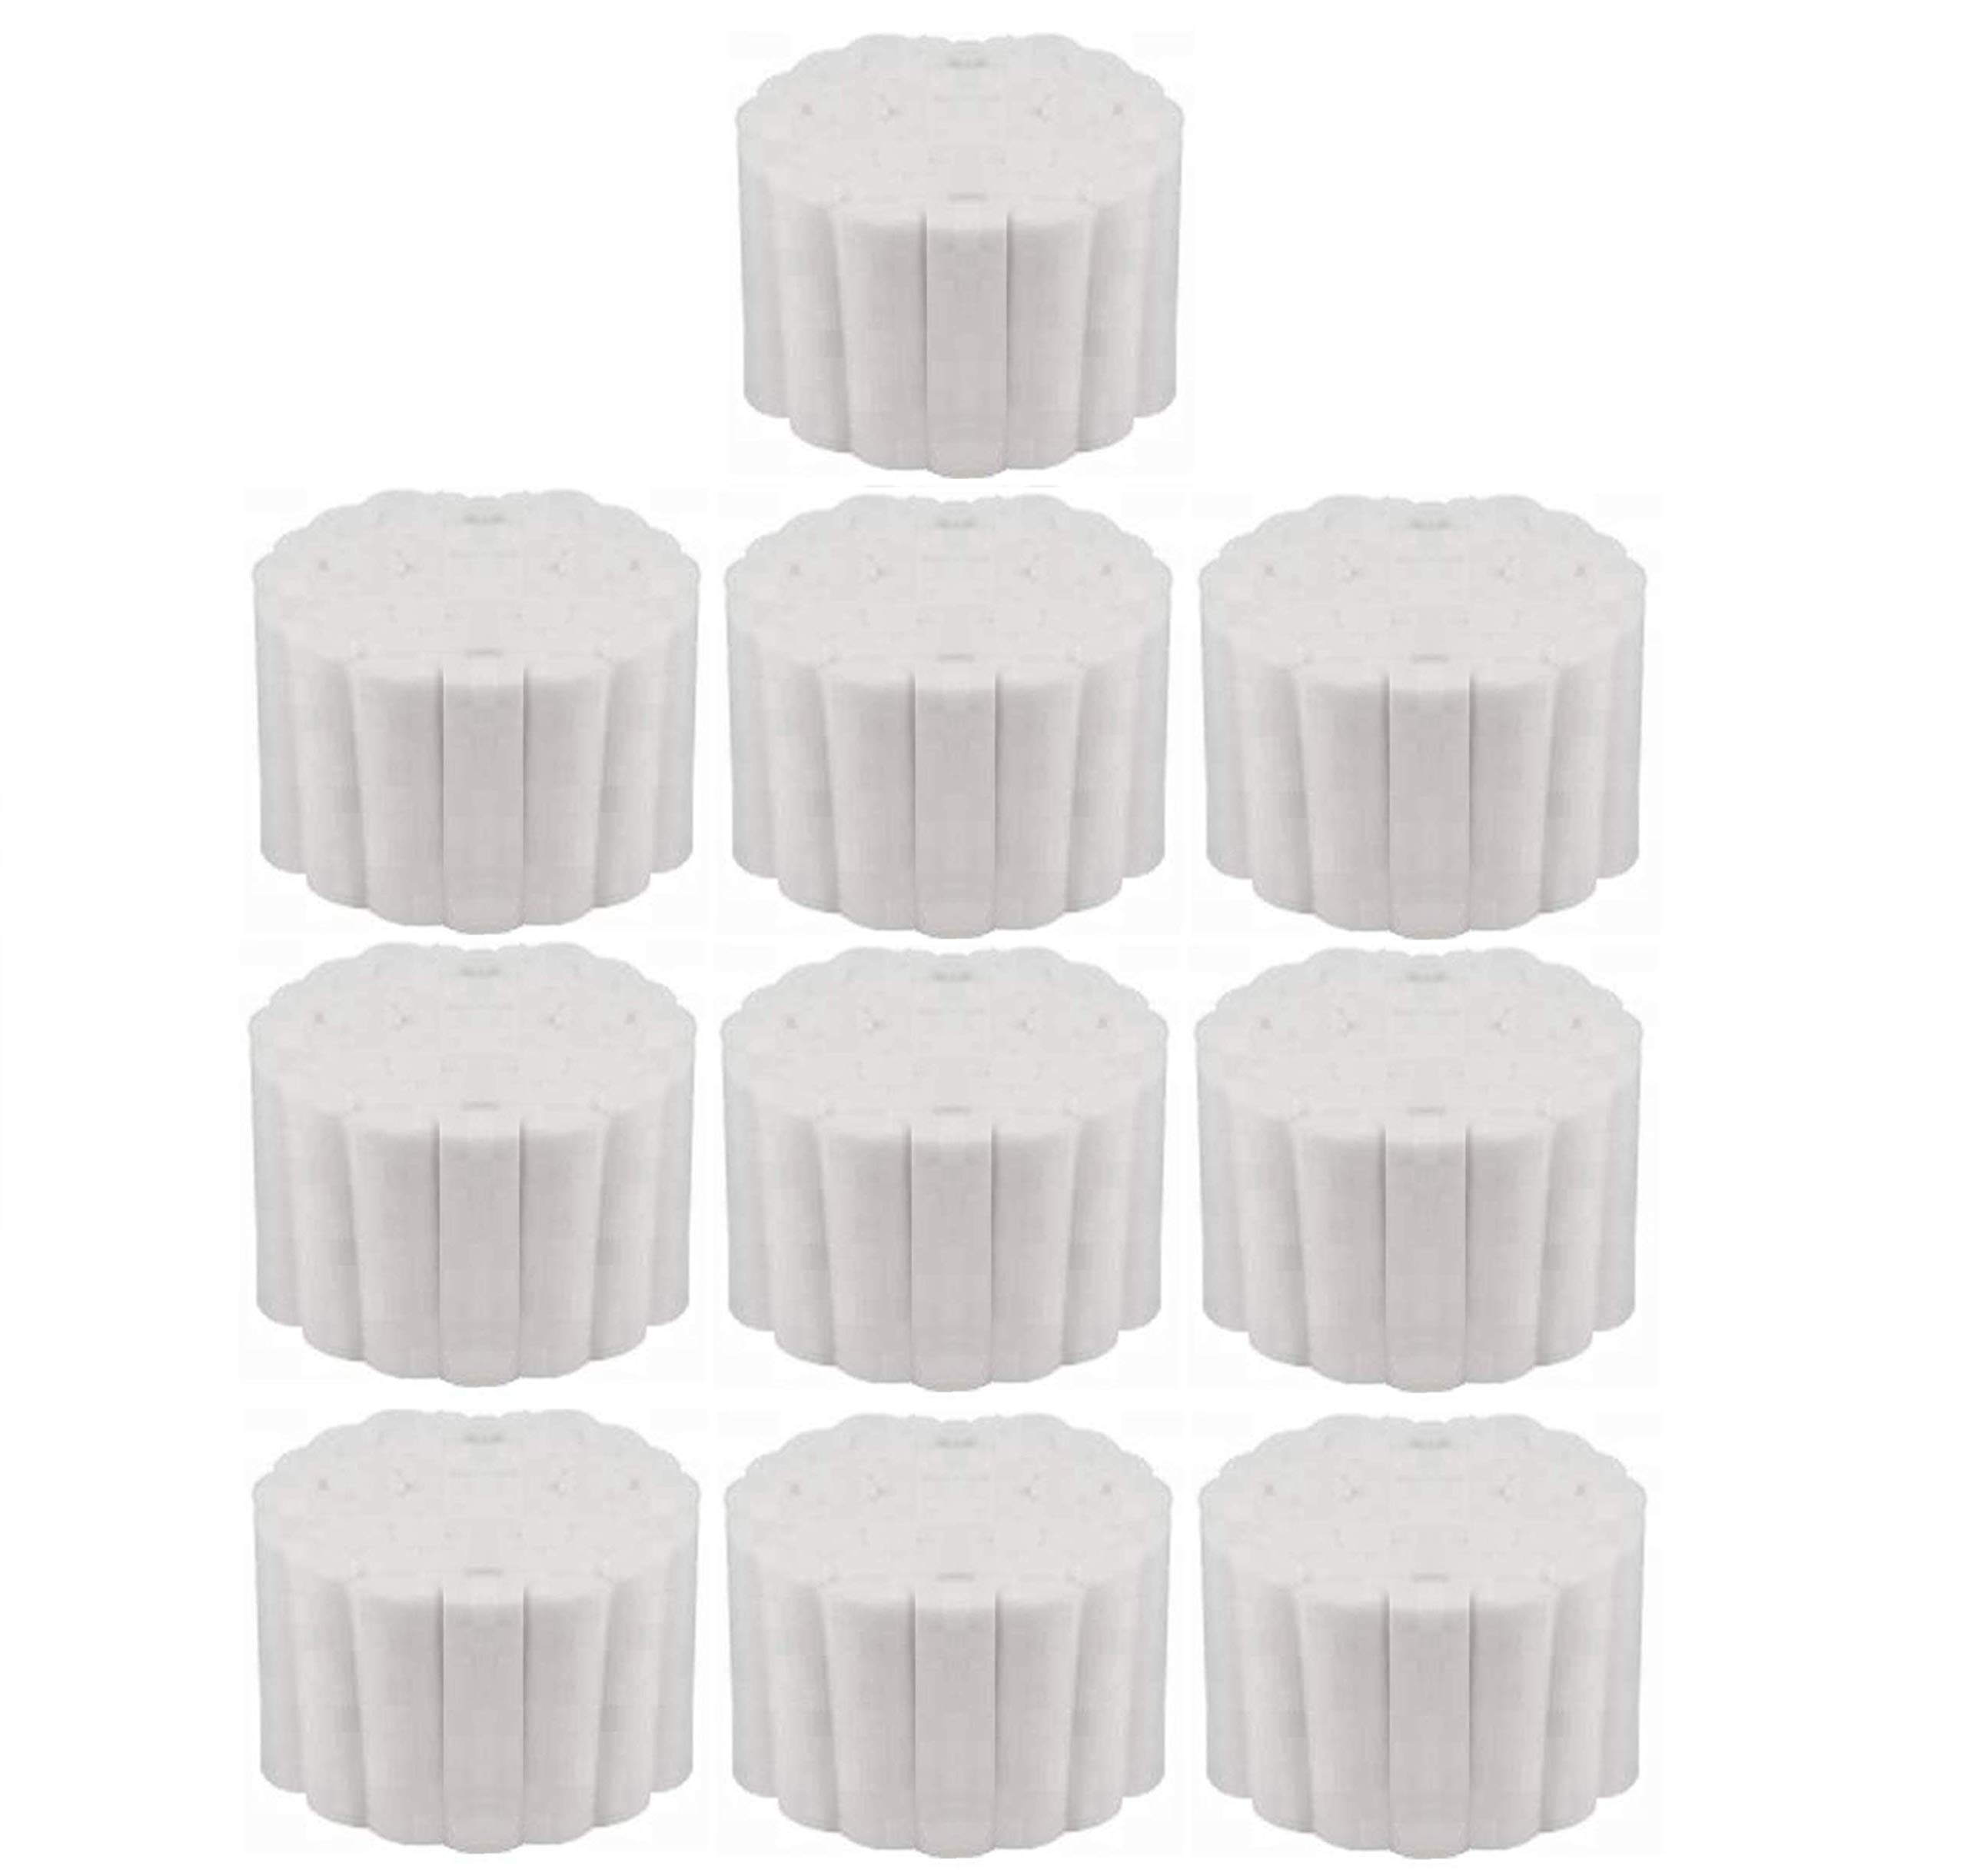 Vakly Dental Cotton Rolls - #2 Medium 1.5'' Non-Sterile 100% High Absorbent Cotton (500 Count)